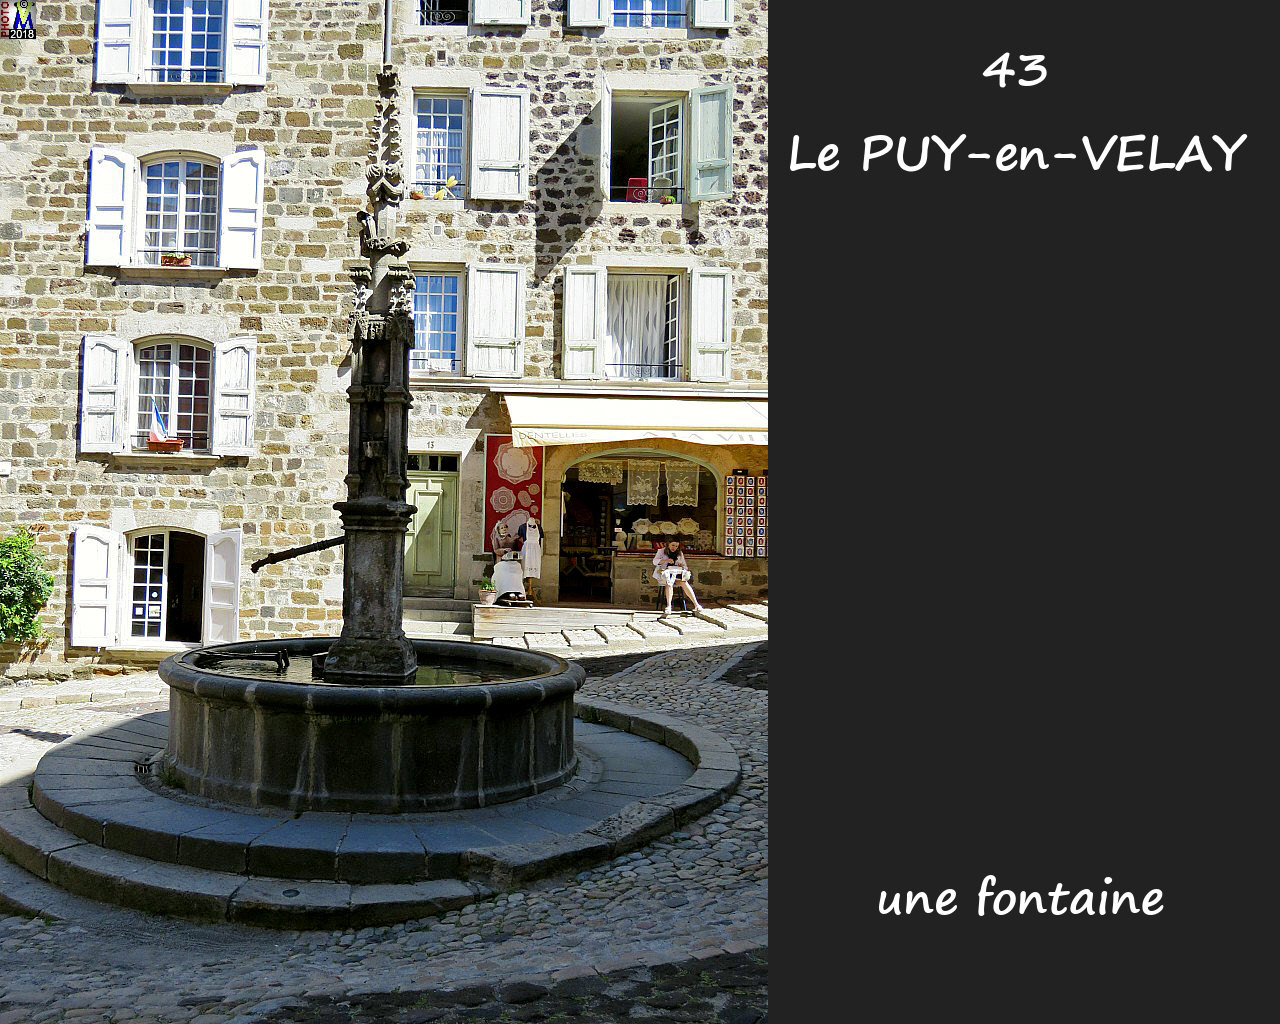 43PUY-EN-VELAY_fontaine_140.jpg